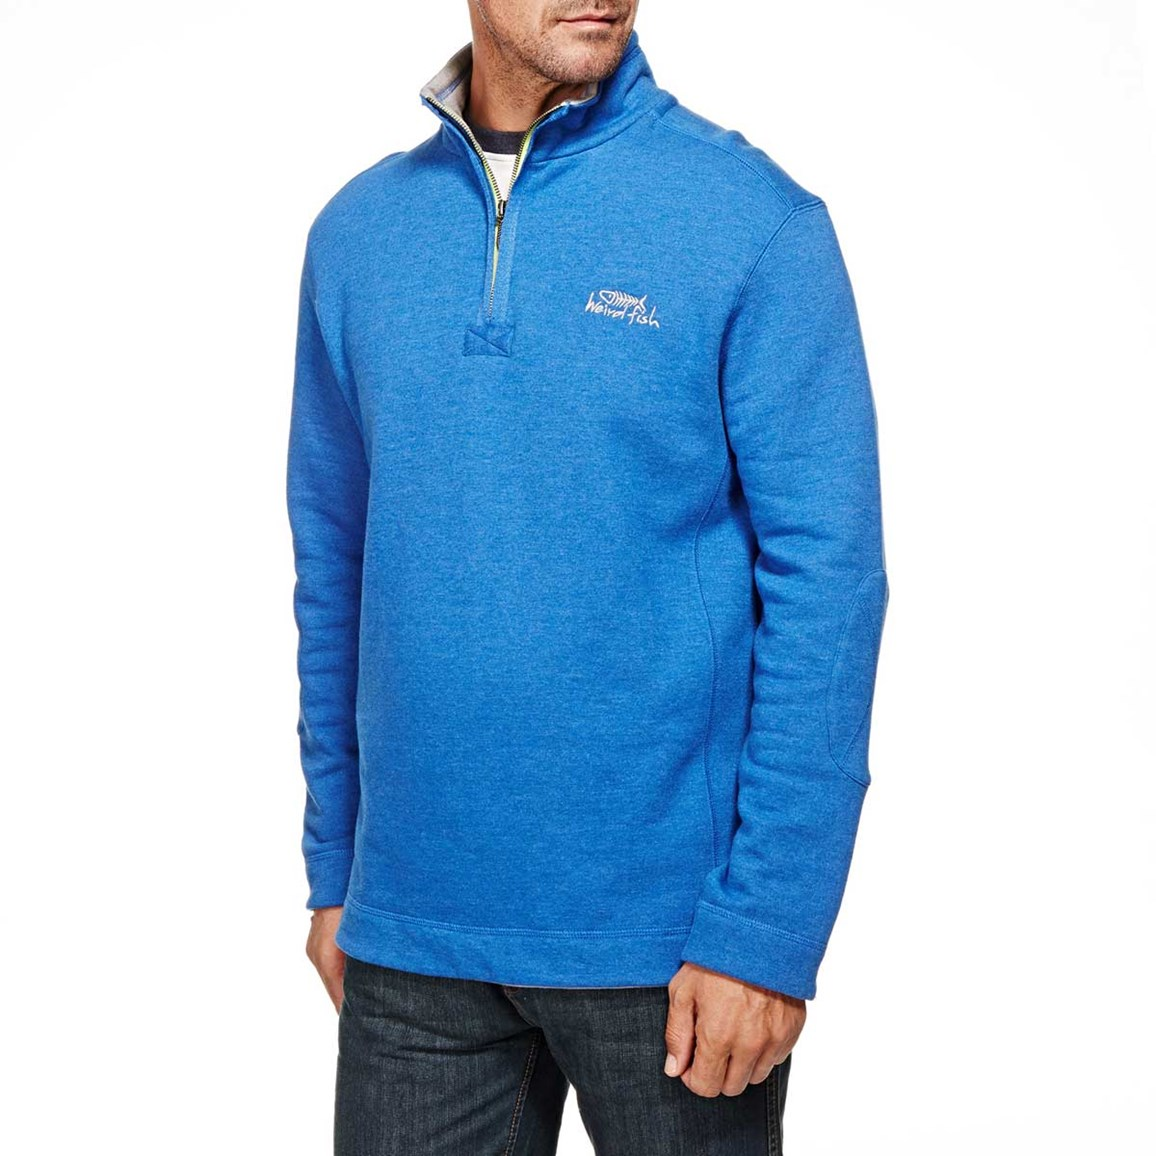 Hail Plain 1/4 Neck Zip Embroidered Sweatshirt Electric Blue